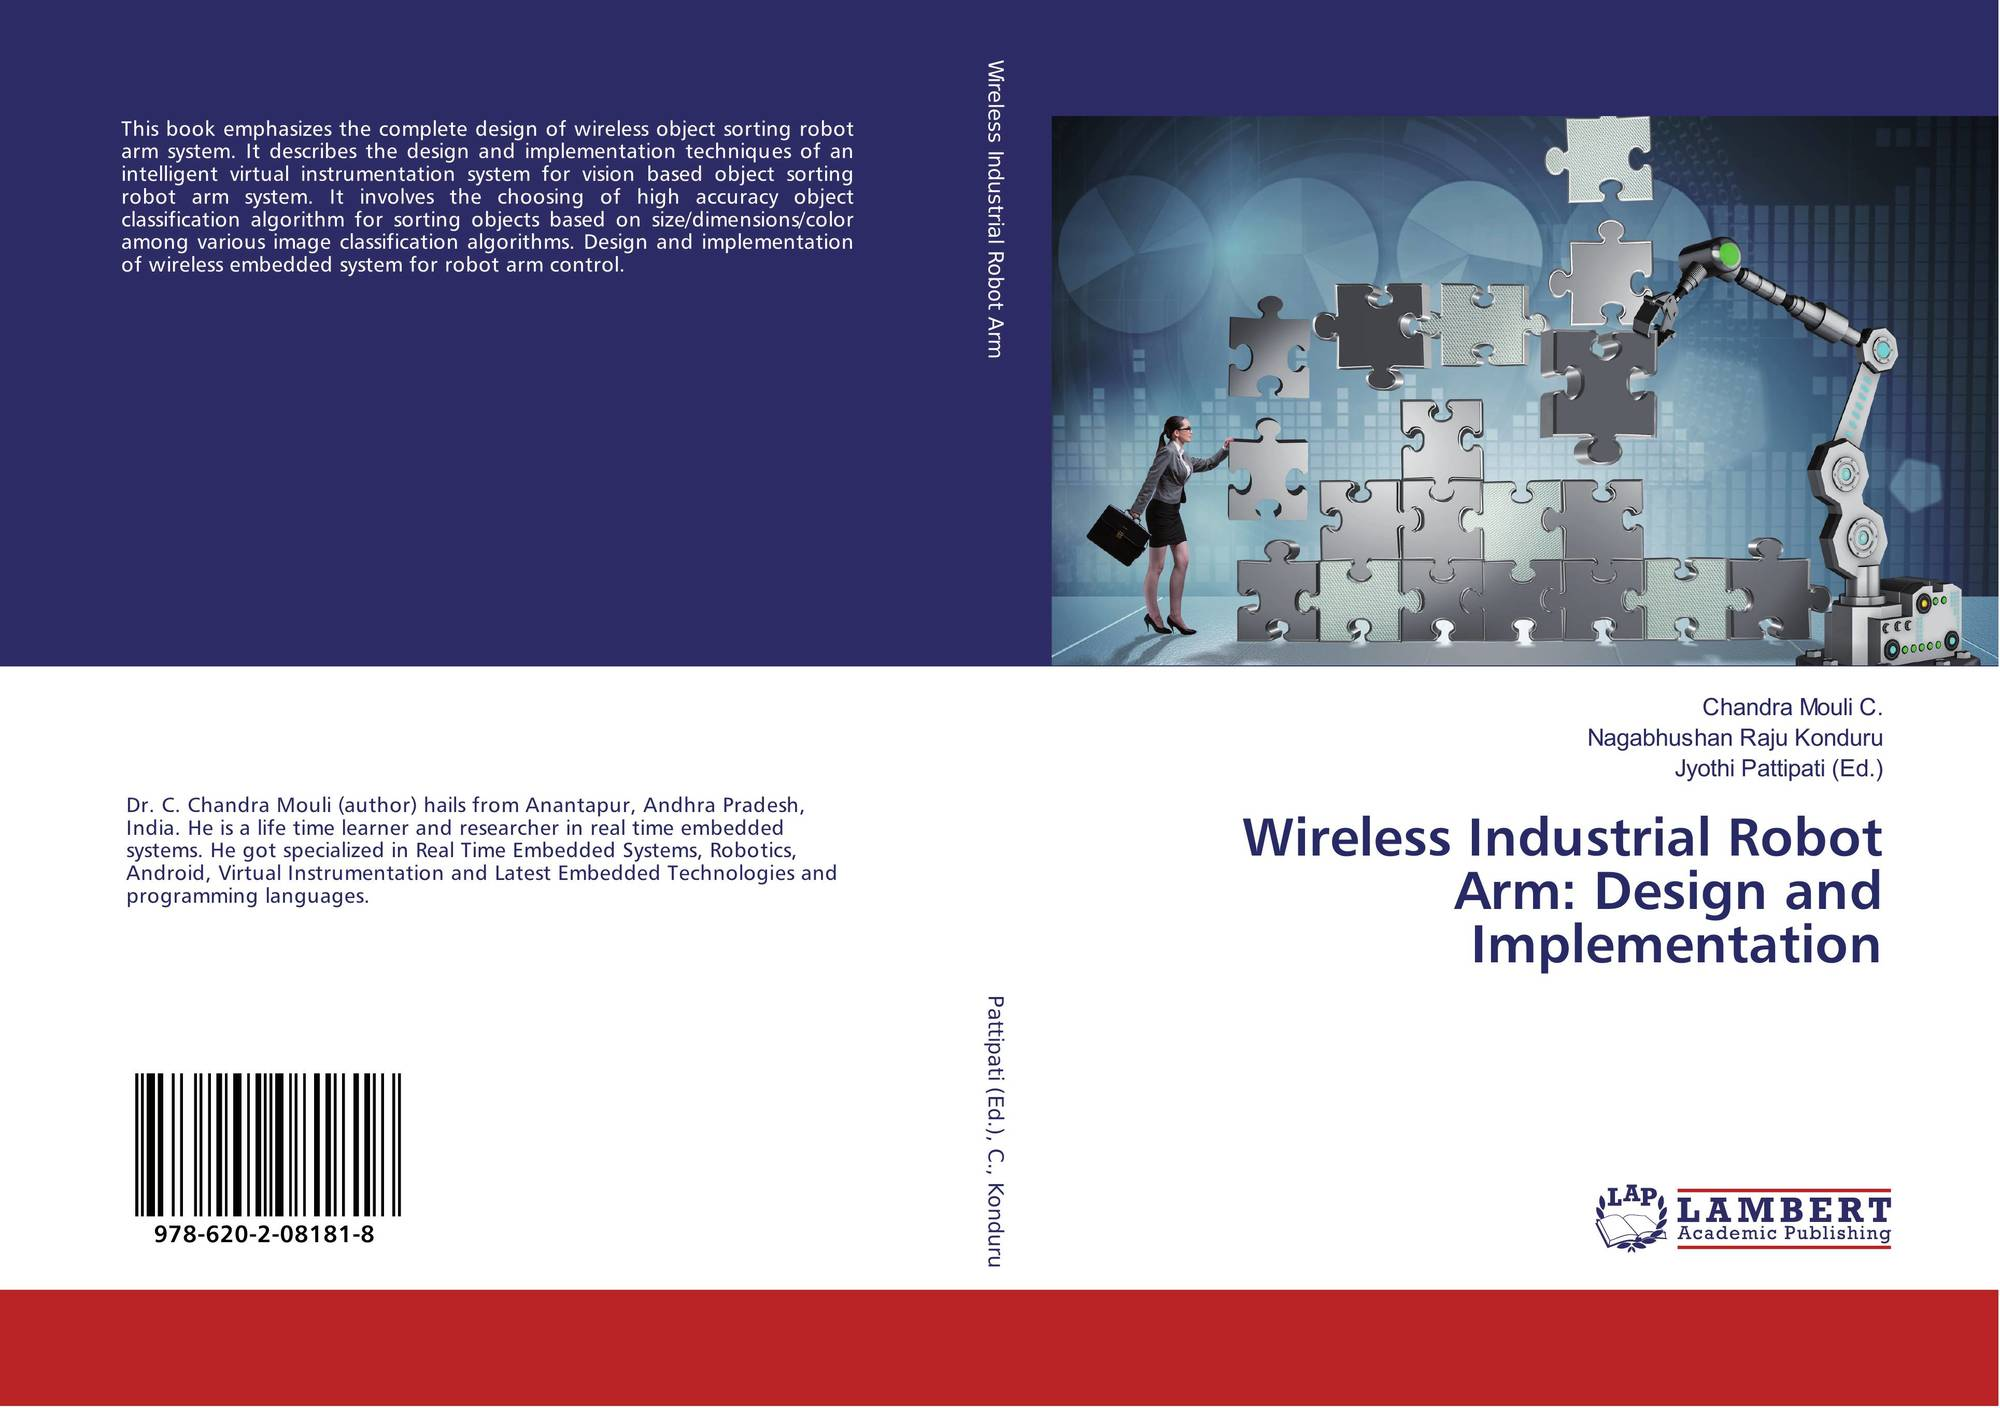 Wireless Industrial Robot Arm: Design and Implementation